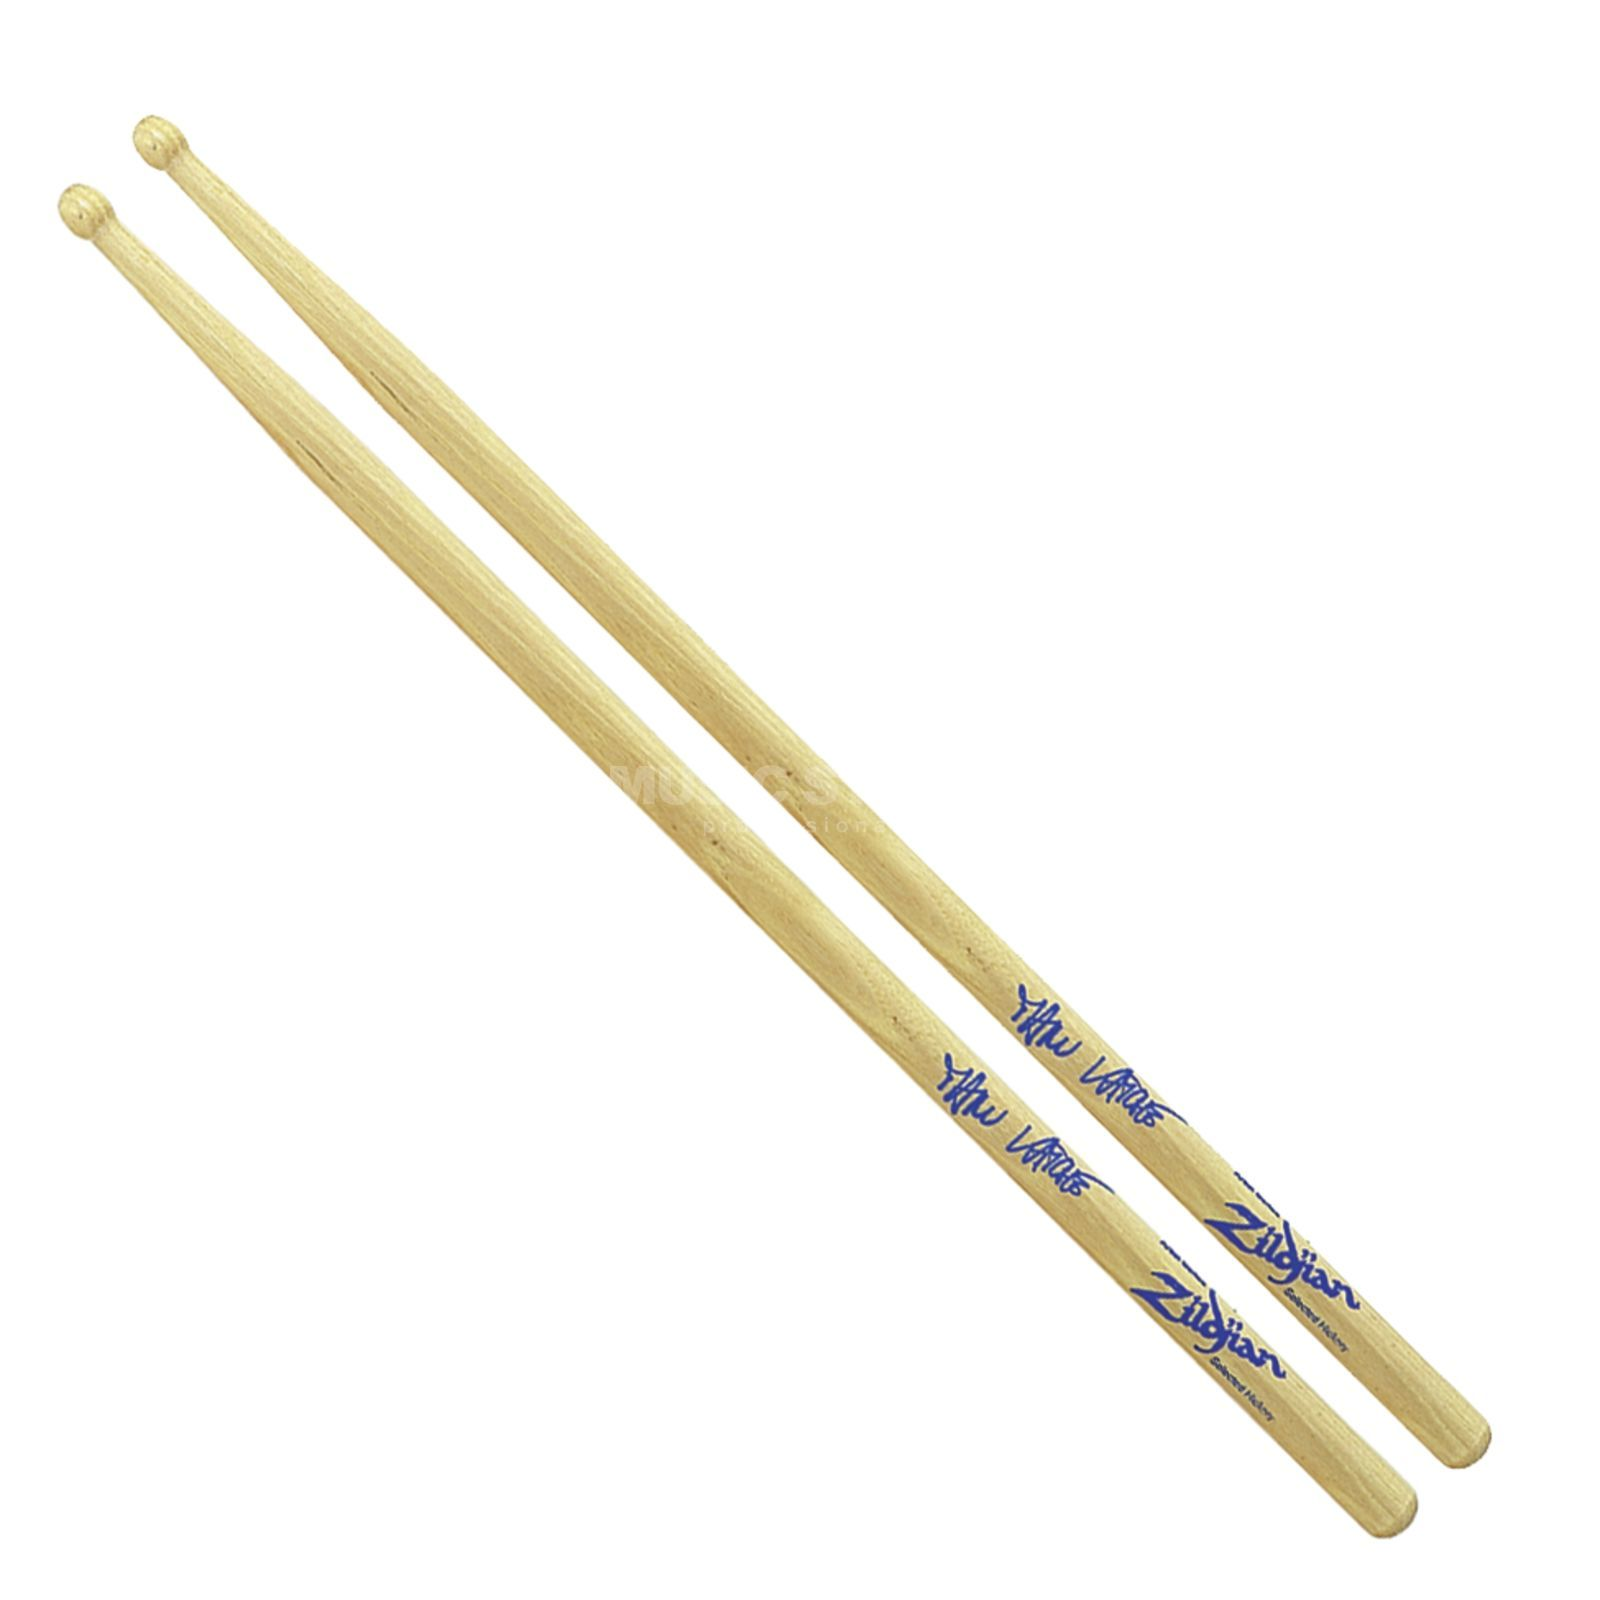 Zildjian Manu Katche Hickory Sticks Natural Finish, Wood Tip Изображение товара